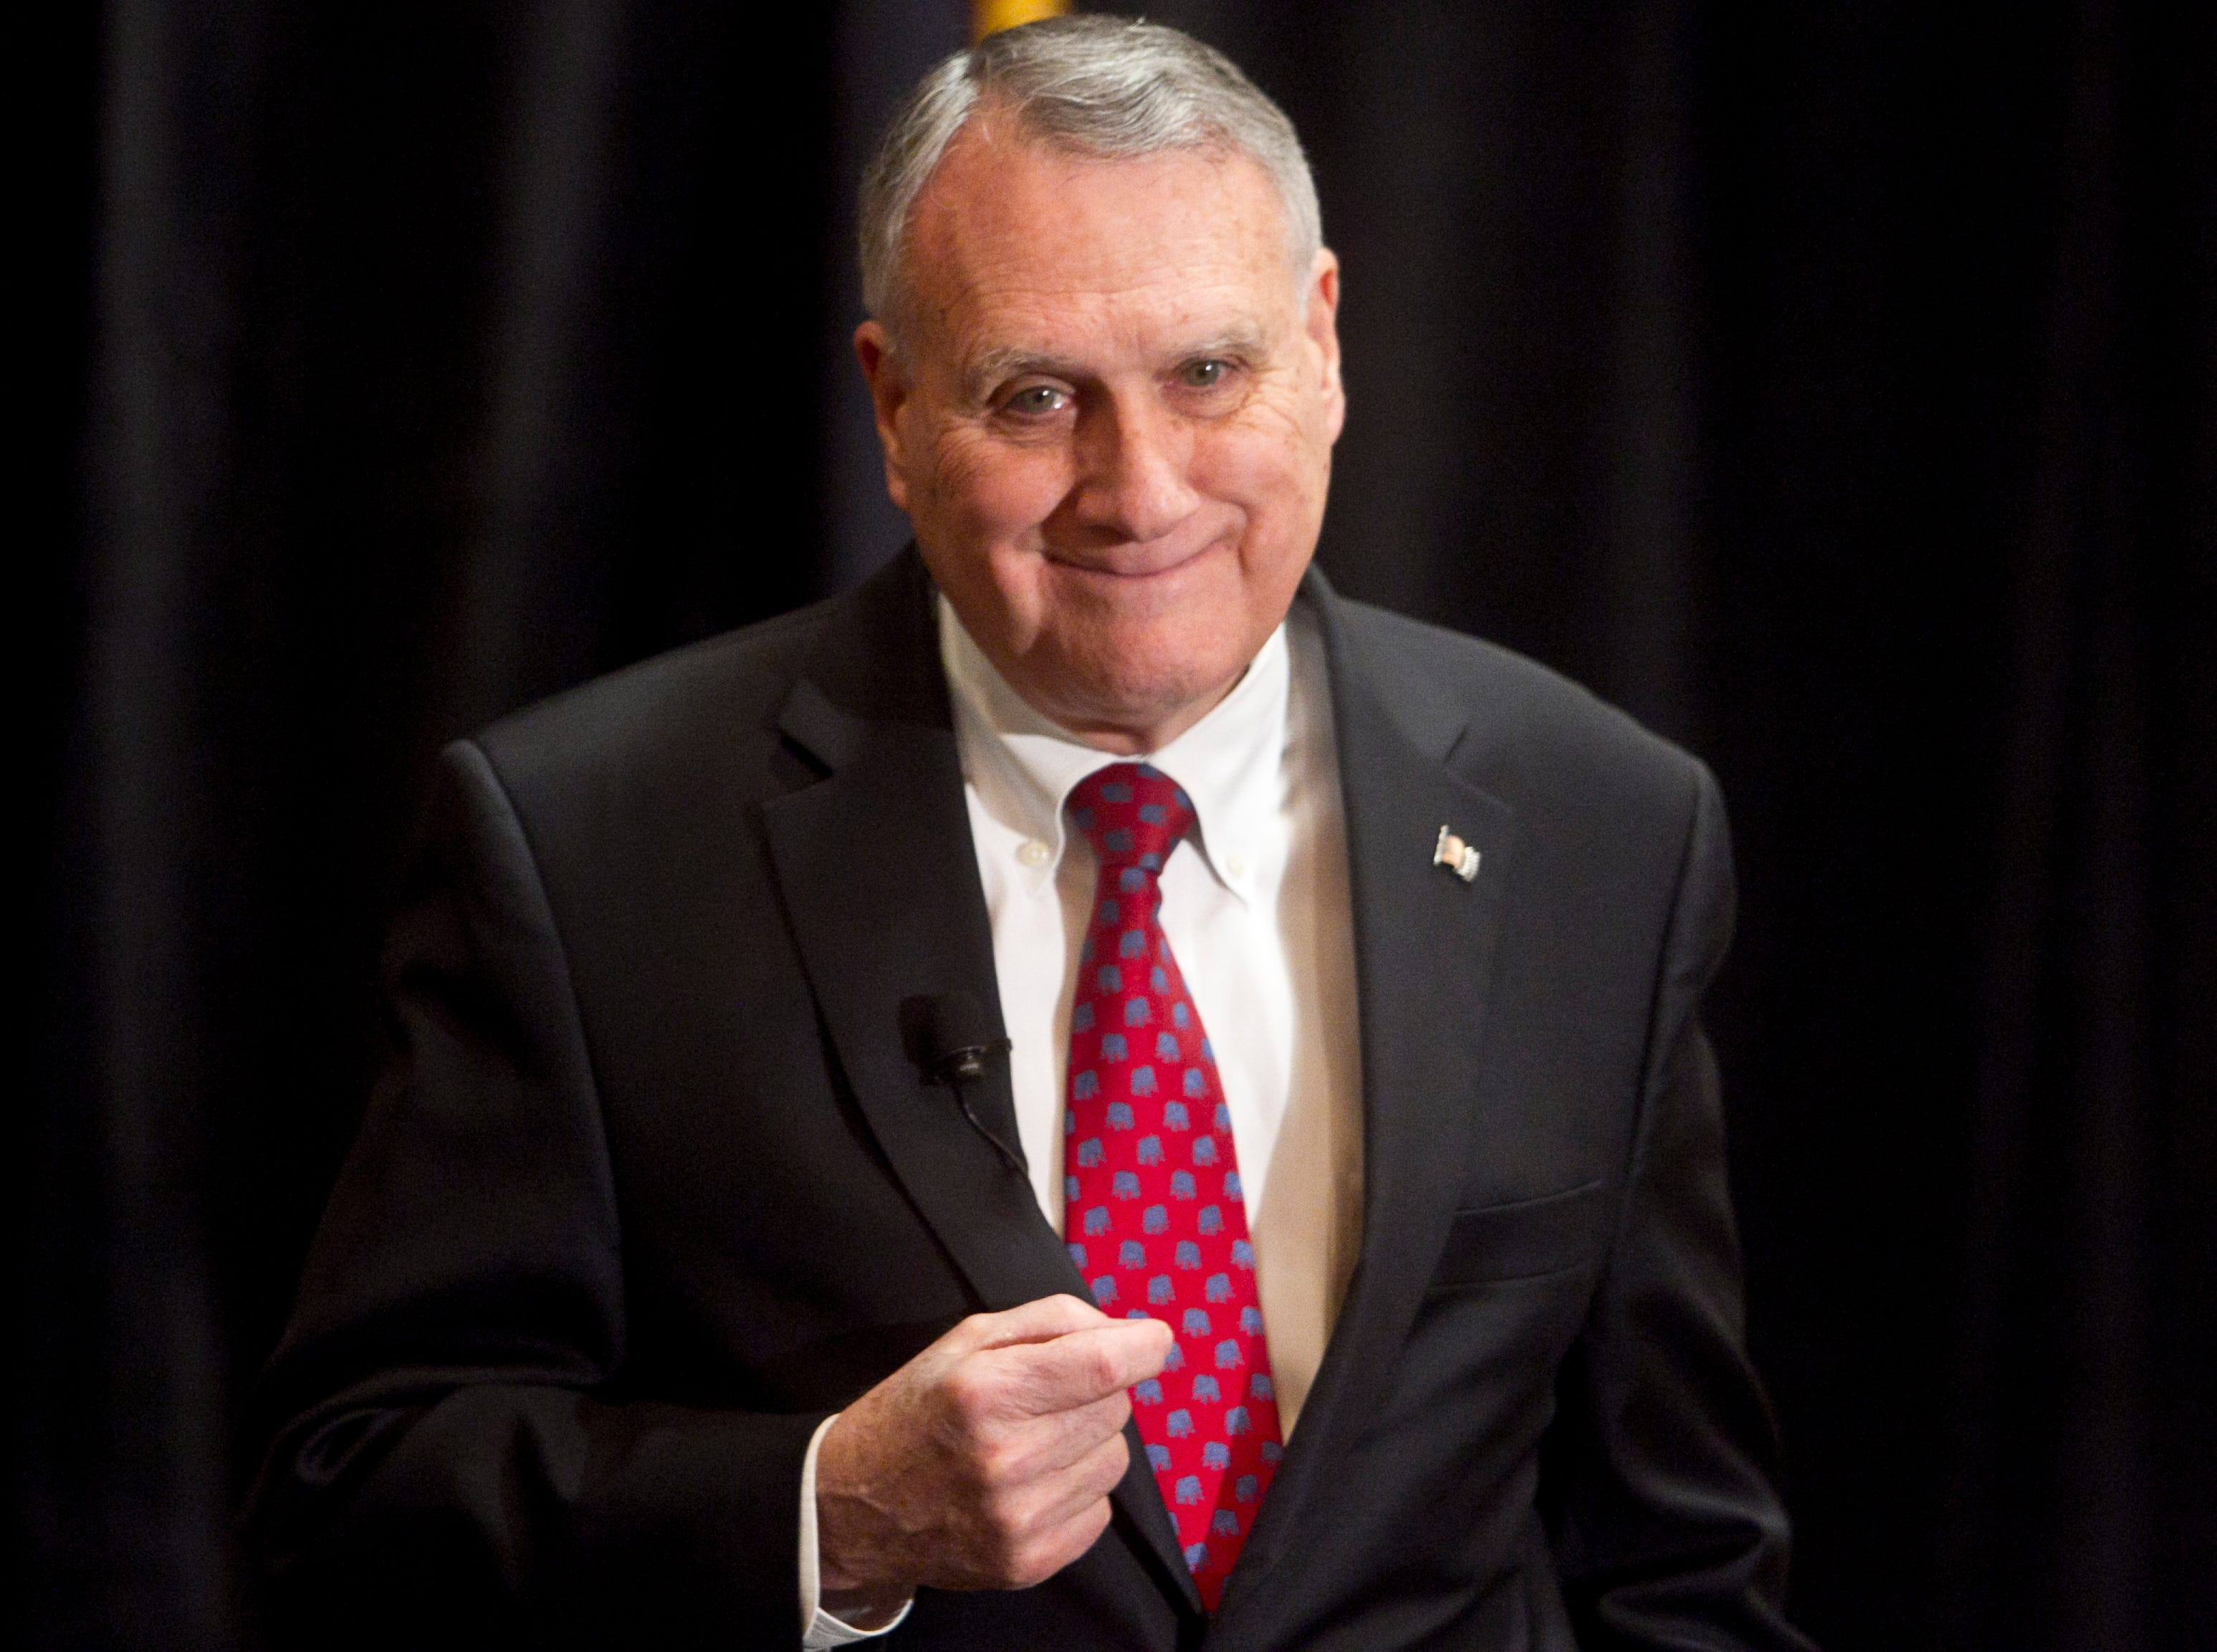 U.S. Senator Jon Kyl explains his decision to not run for another term, Feb. 10, 2011.